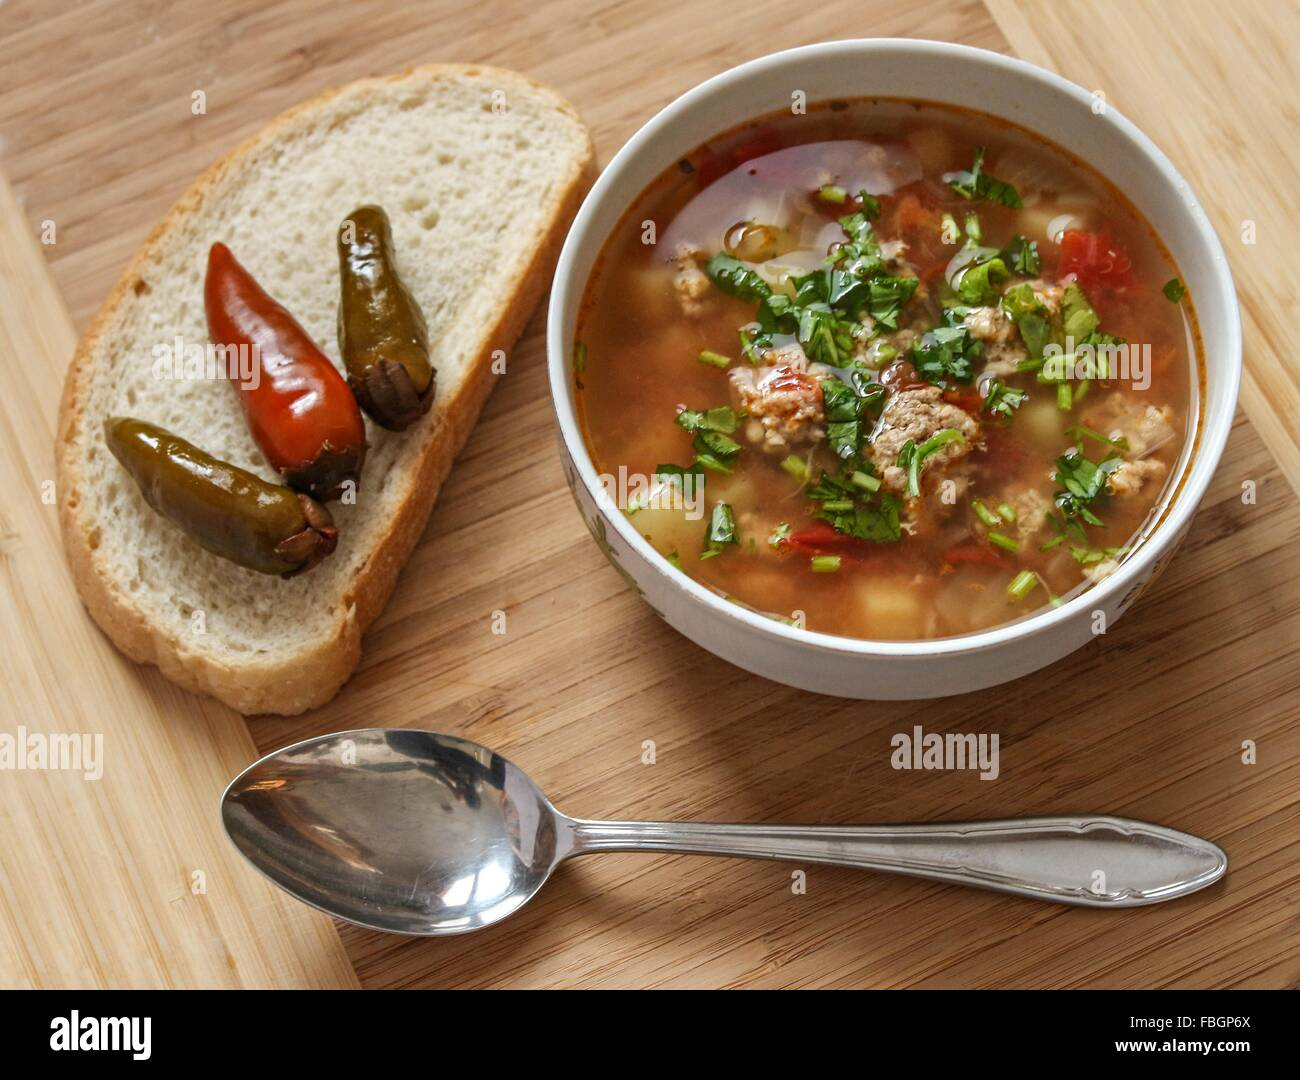 Food - Soup with meat balls with chili peppers and bread - wood background - Stock Image